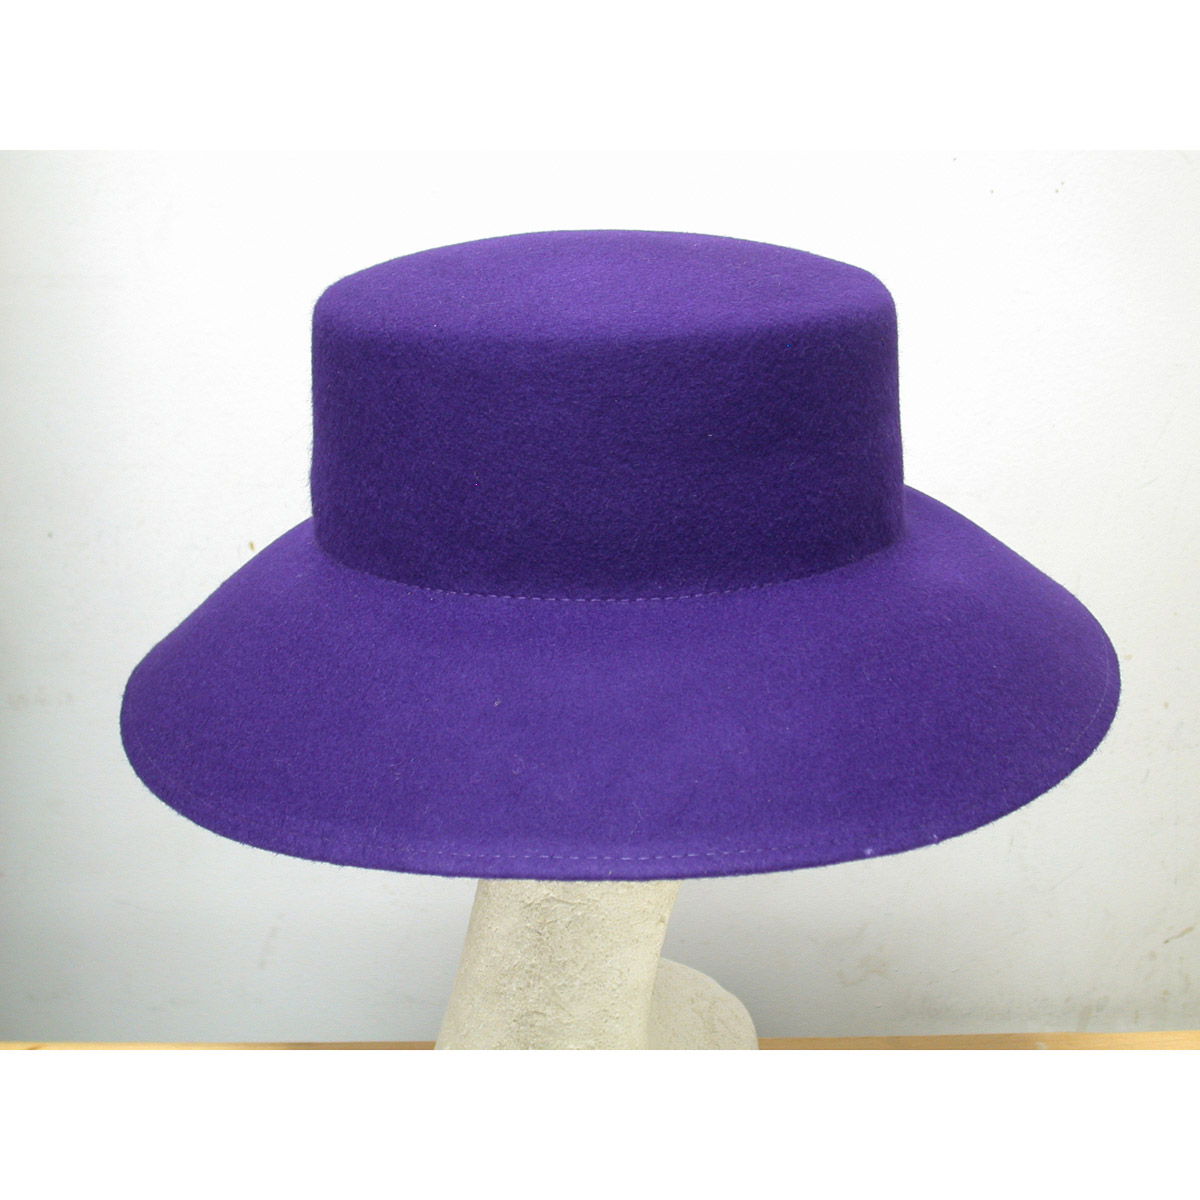 b8cd94361 Purple Lampshade Flat Top Blocked Untrimmed Felt Hat Base